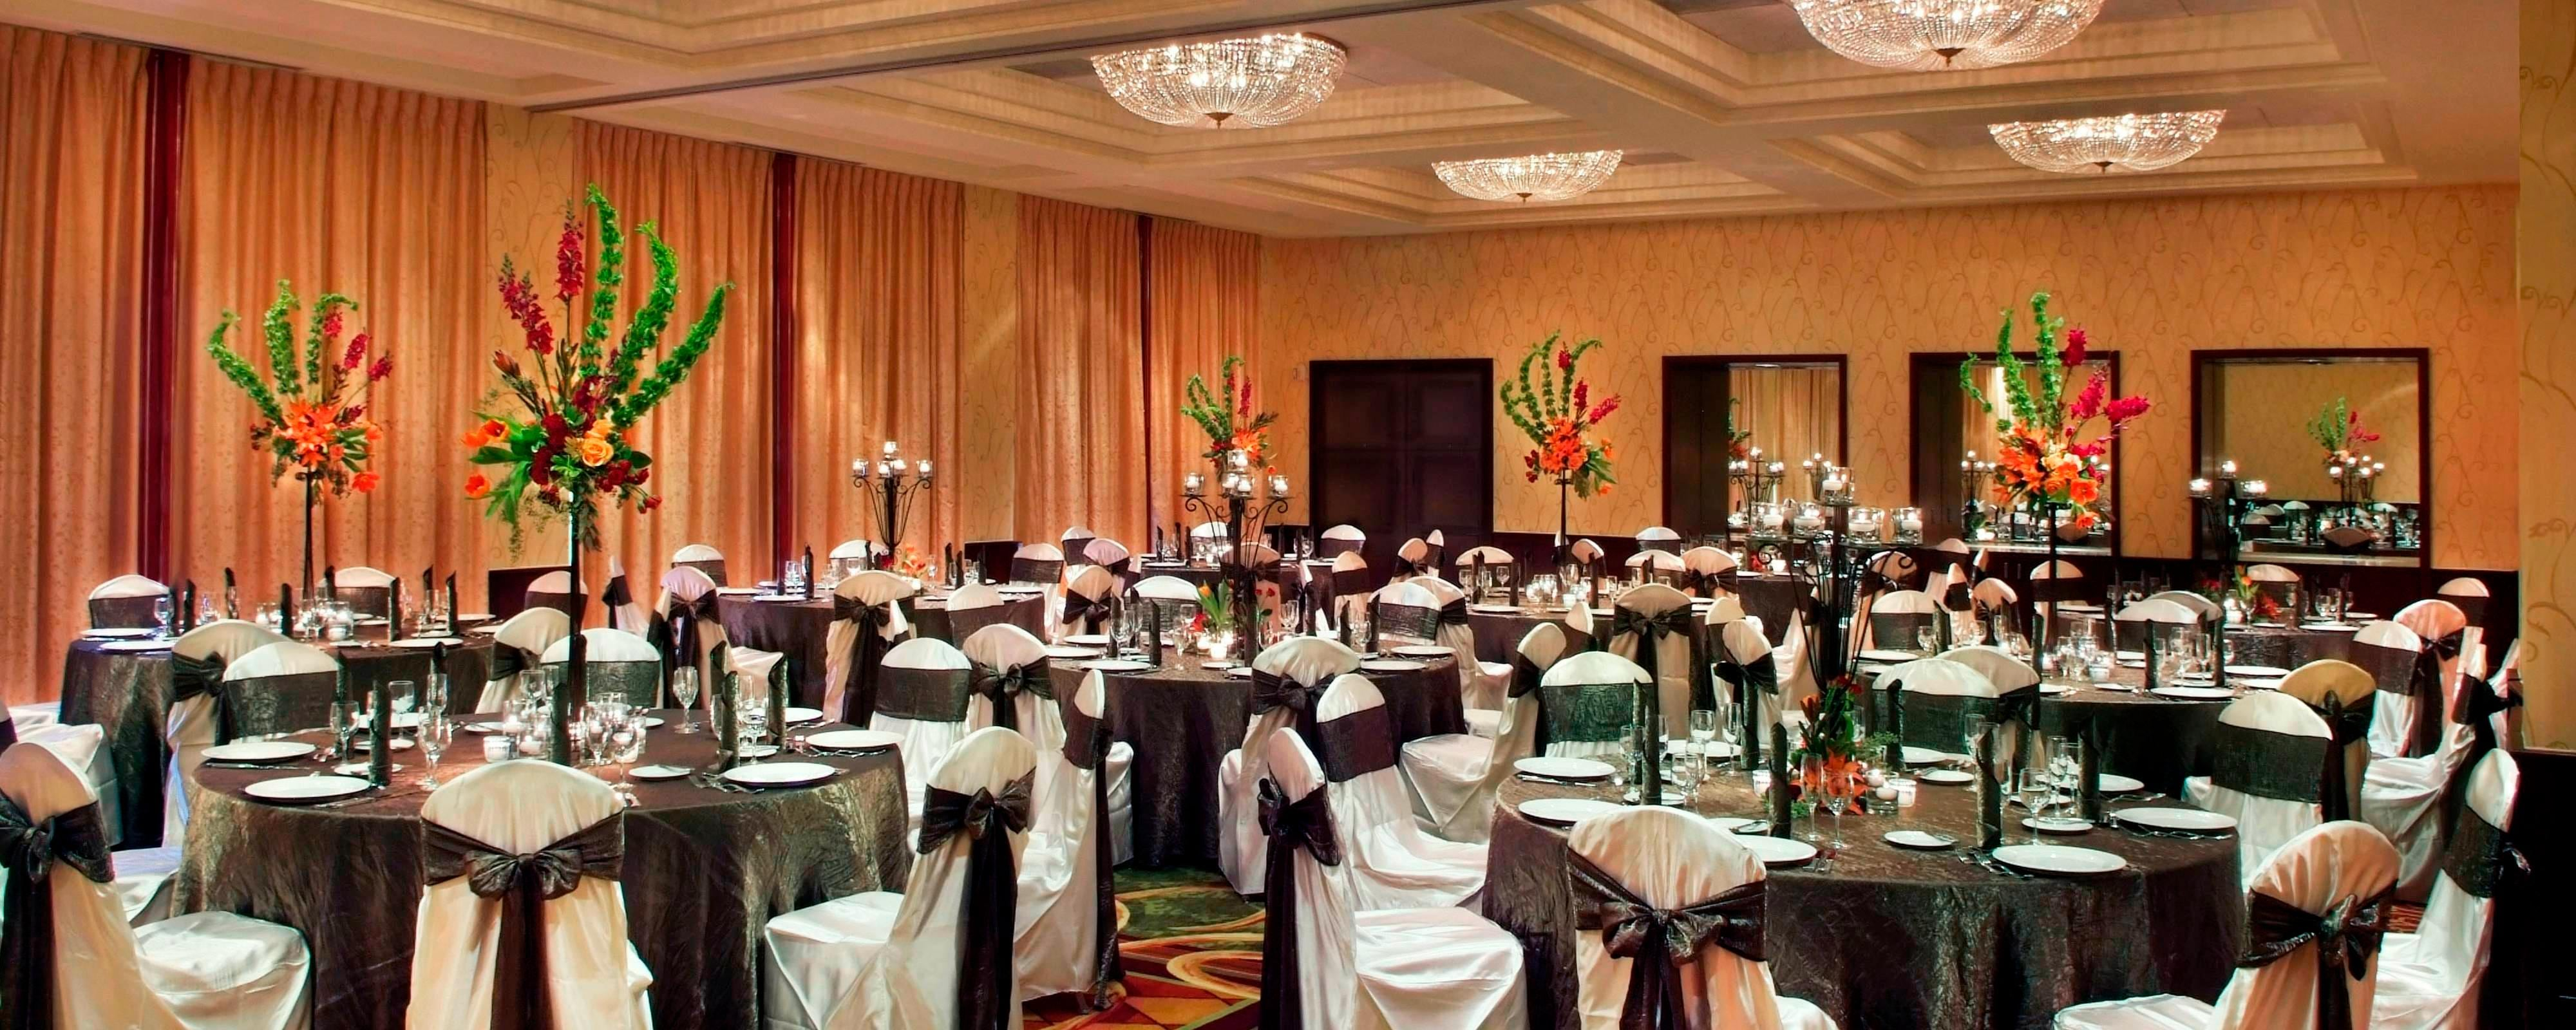 Banquet Halls And Wedding Venues In Charlotte Nc Marriott Southpark